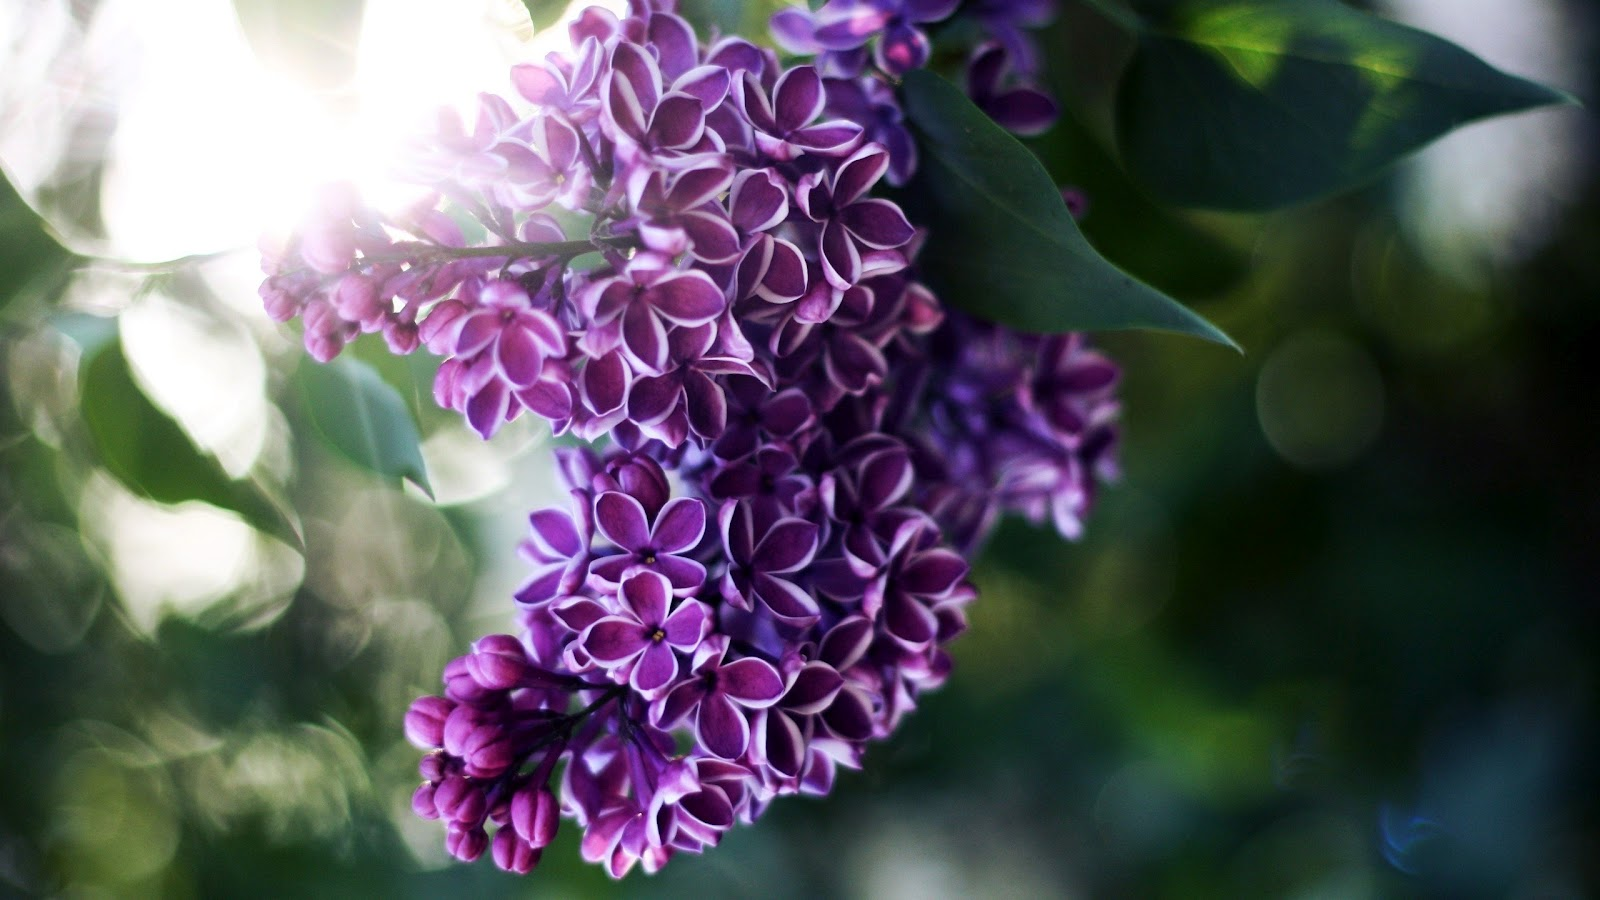 PC, Laptop Lilac Flowers Wallpapers, BsnSCB Gallery